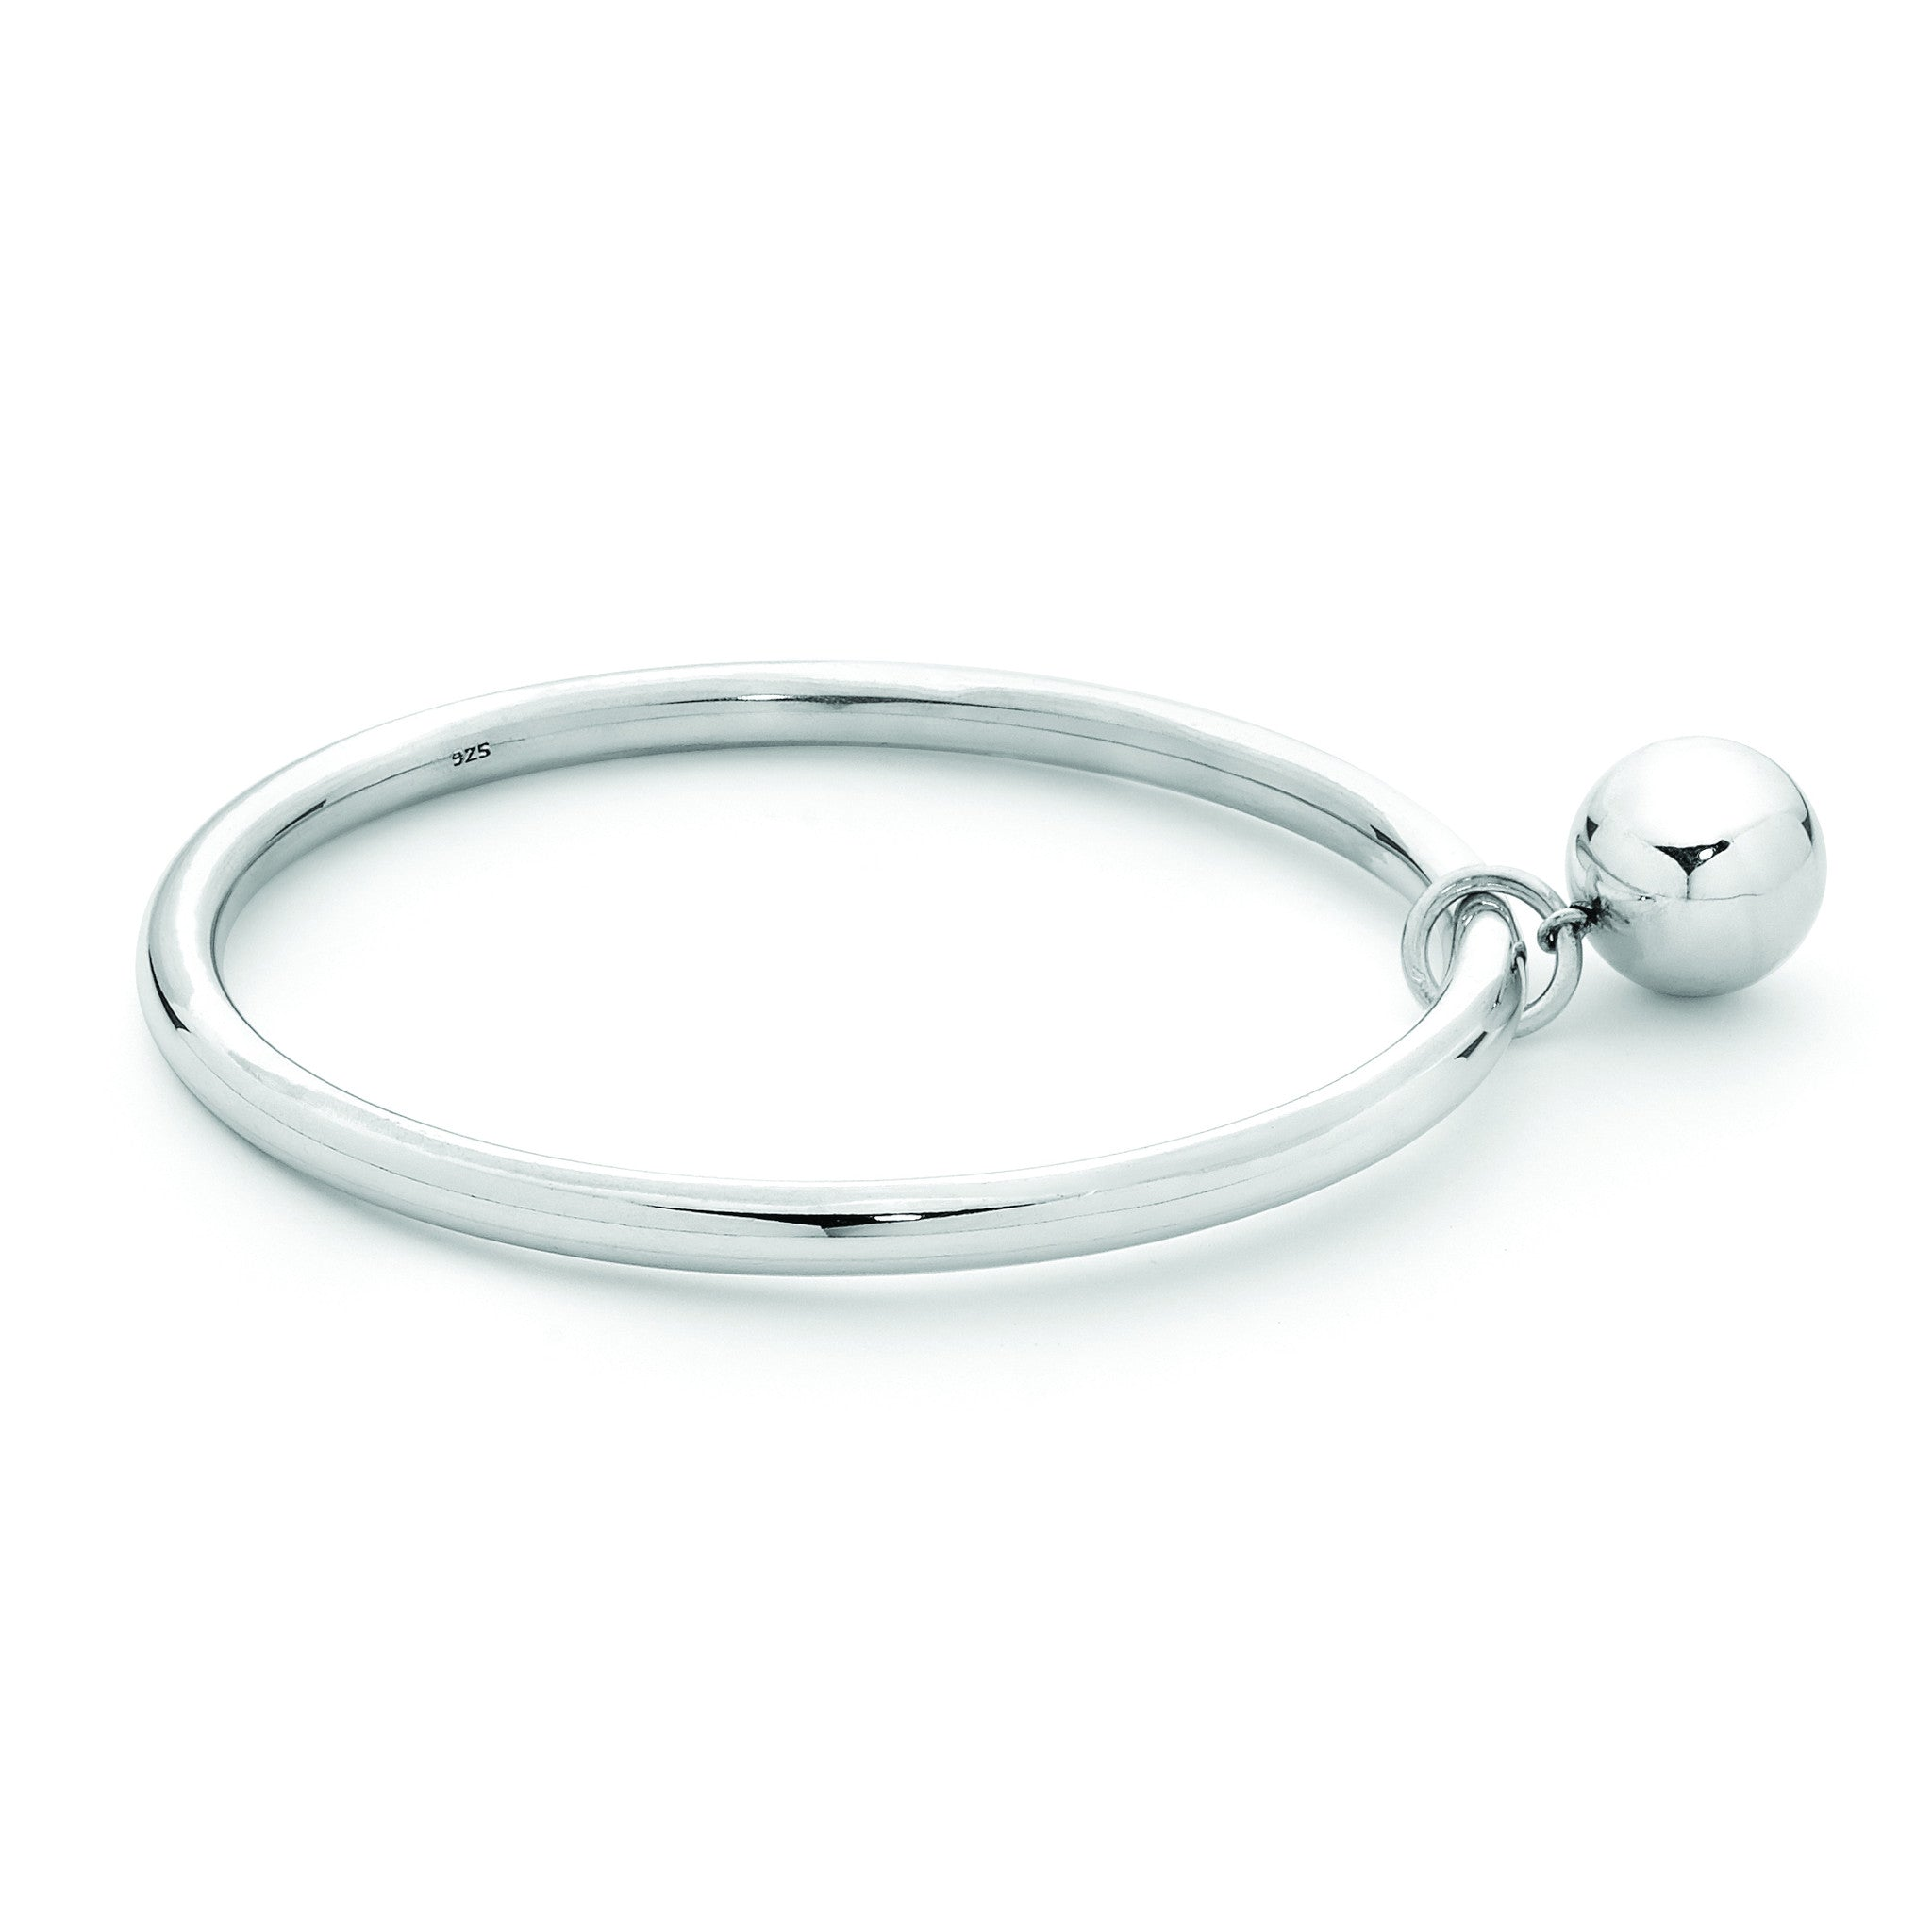 Belinda 925 Sterling Silver Bangle 5x62mm with 14mm Ball